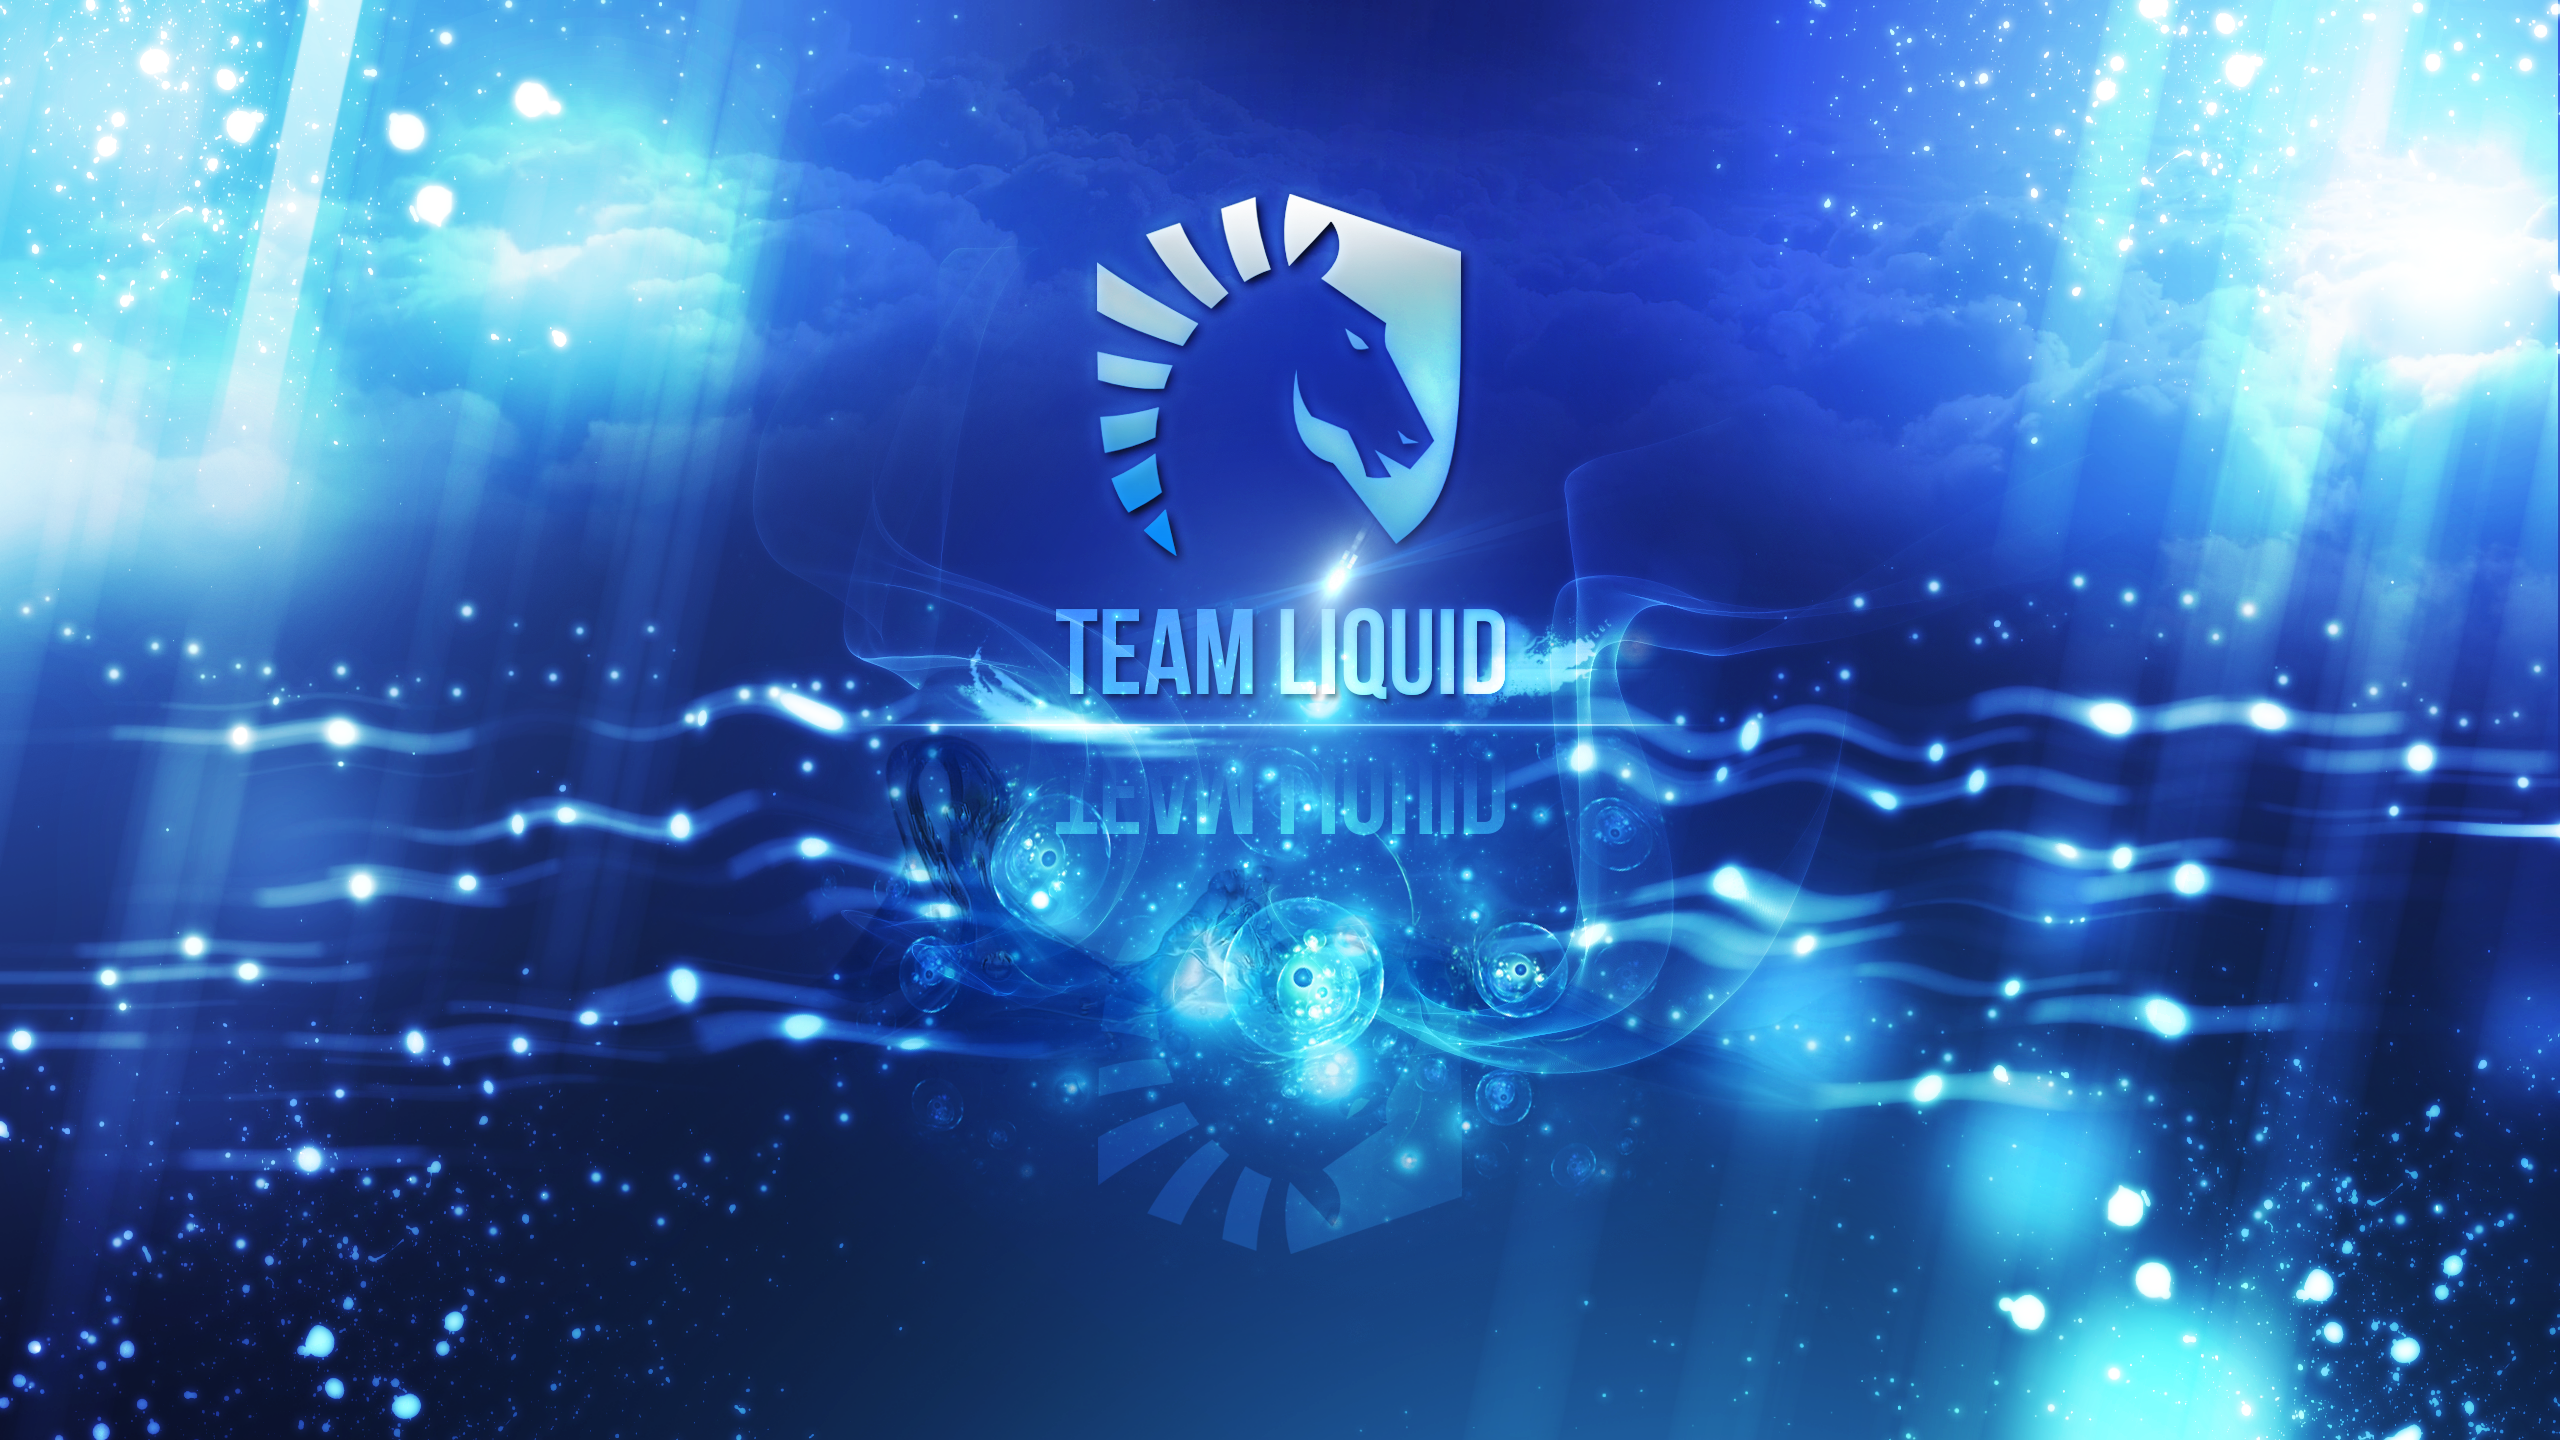 Team Liquid wallpaper